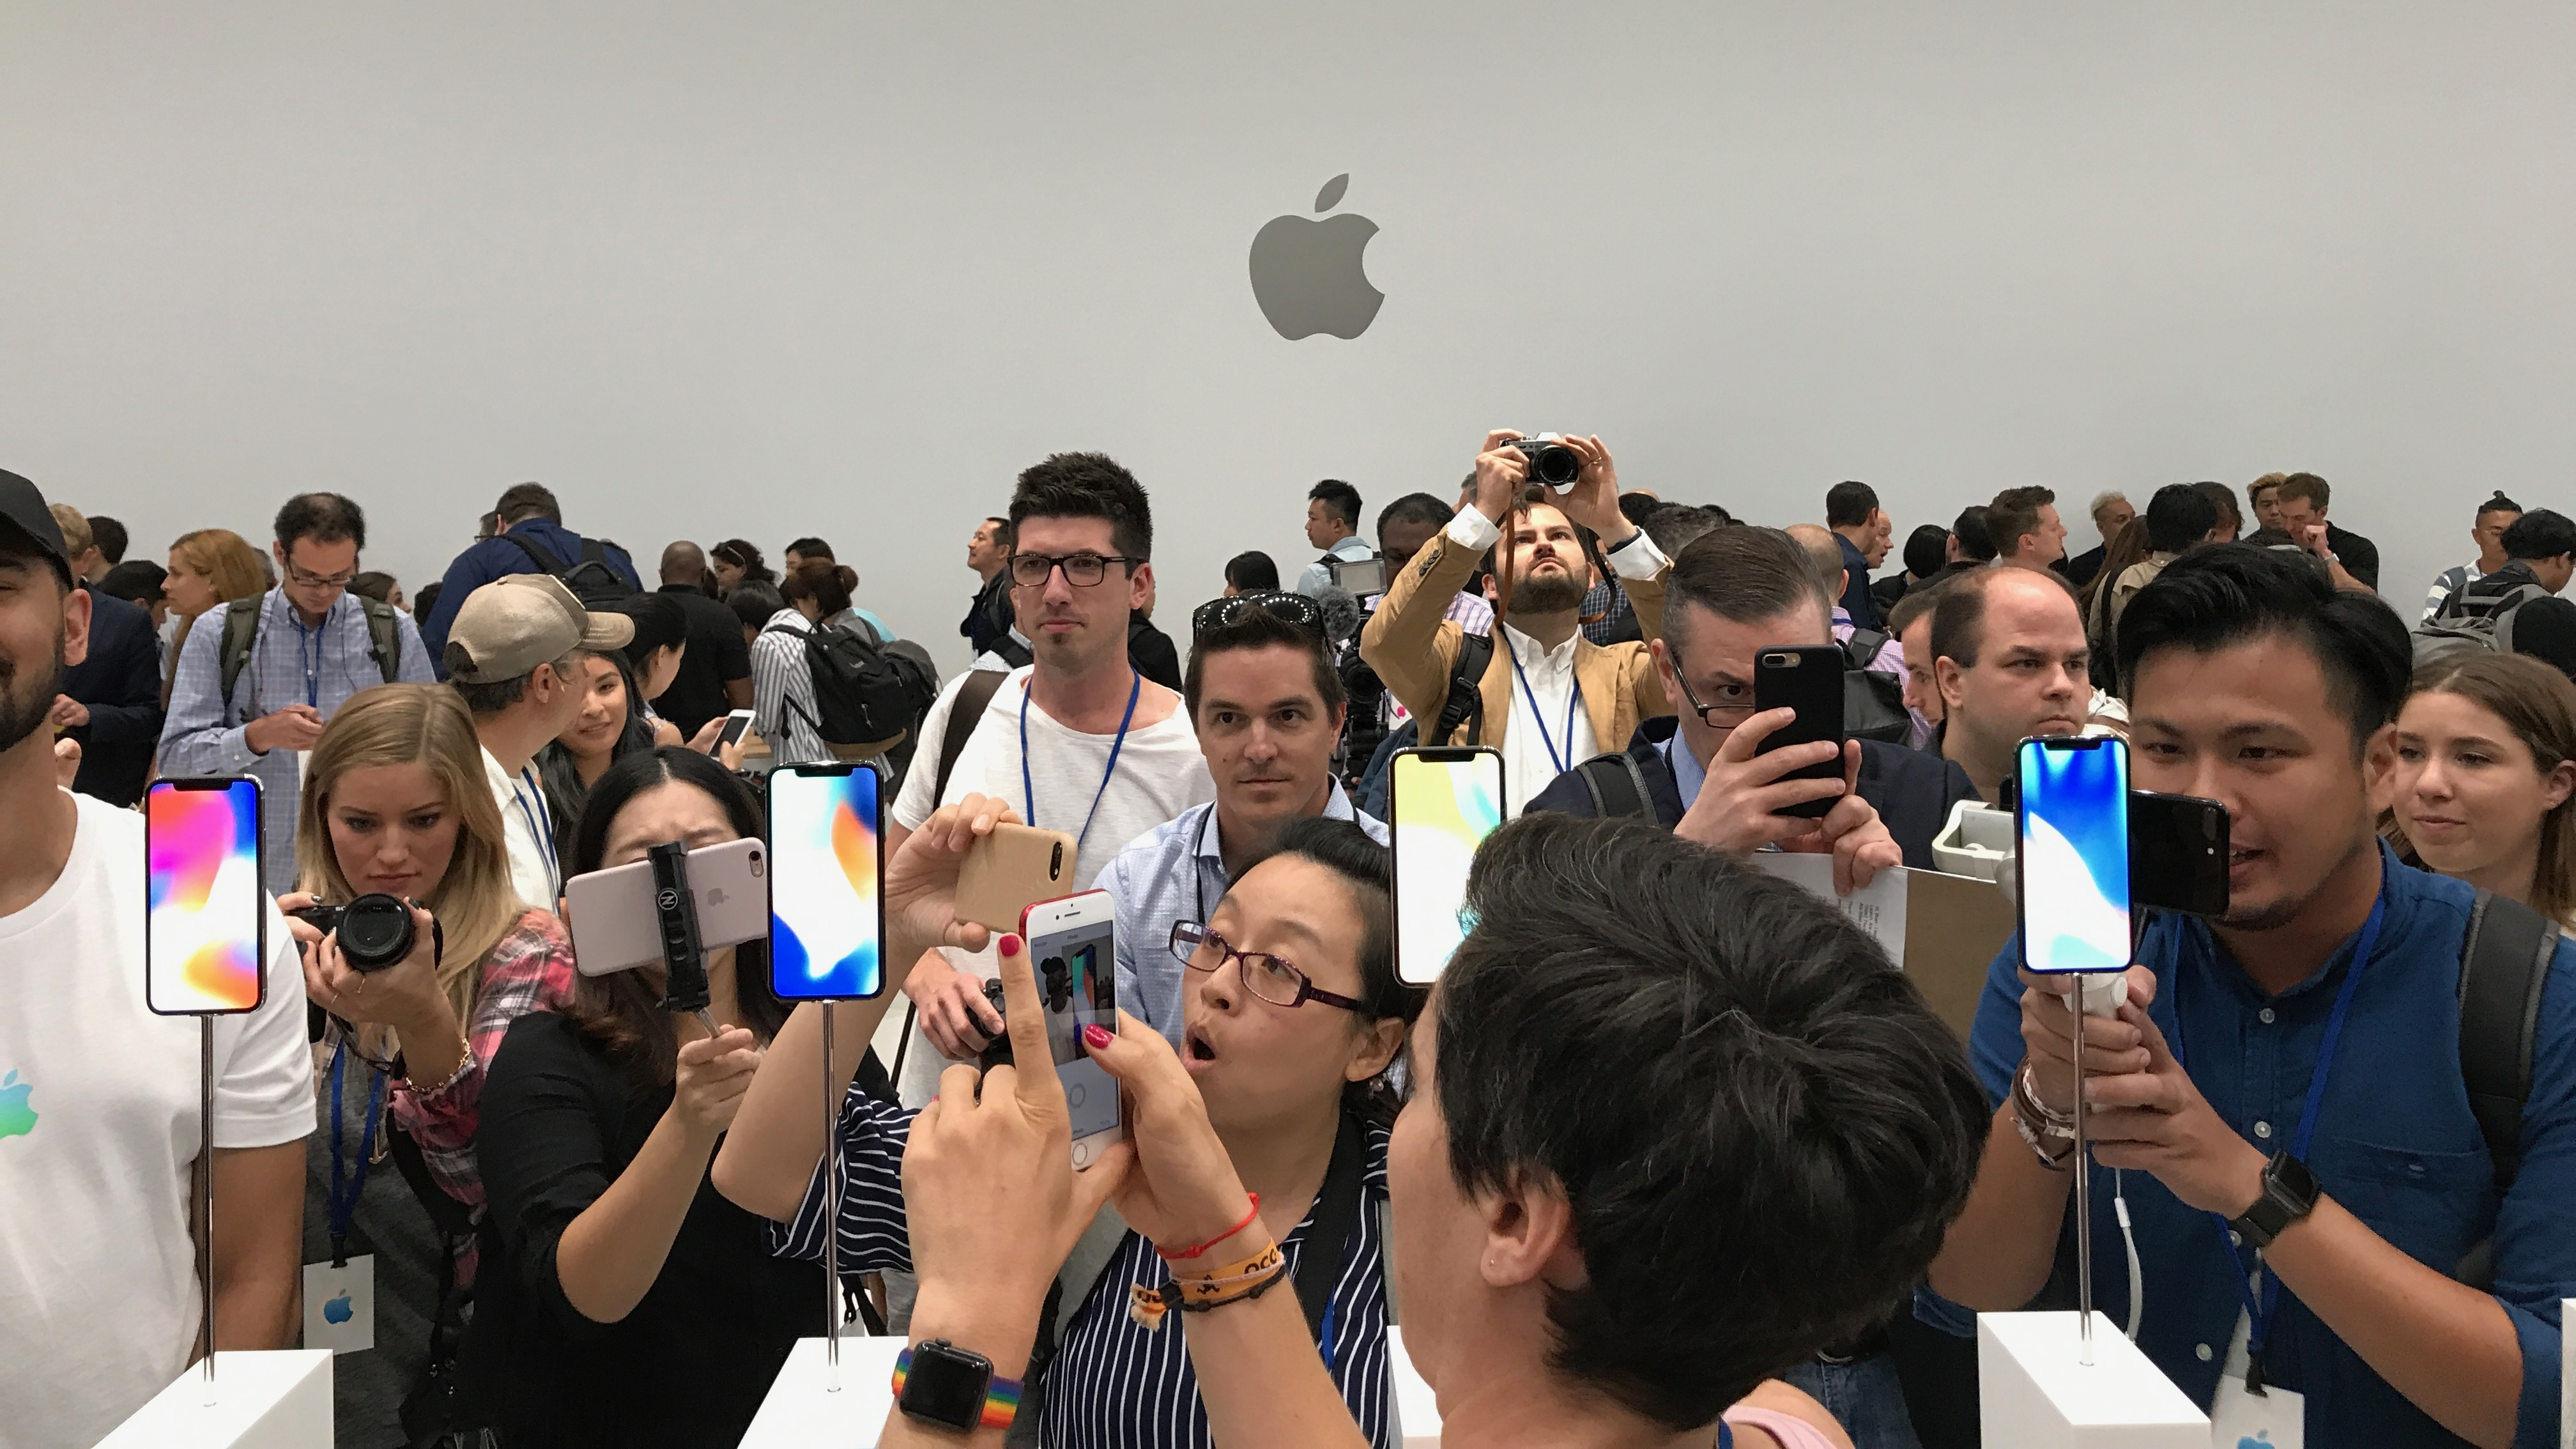 iphone event apple september 2017 iphone x apple watch